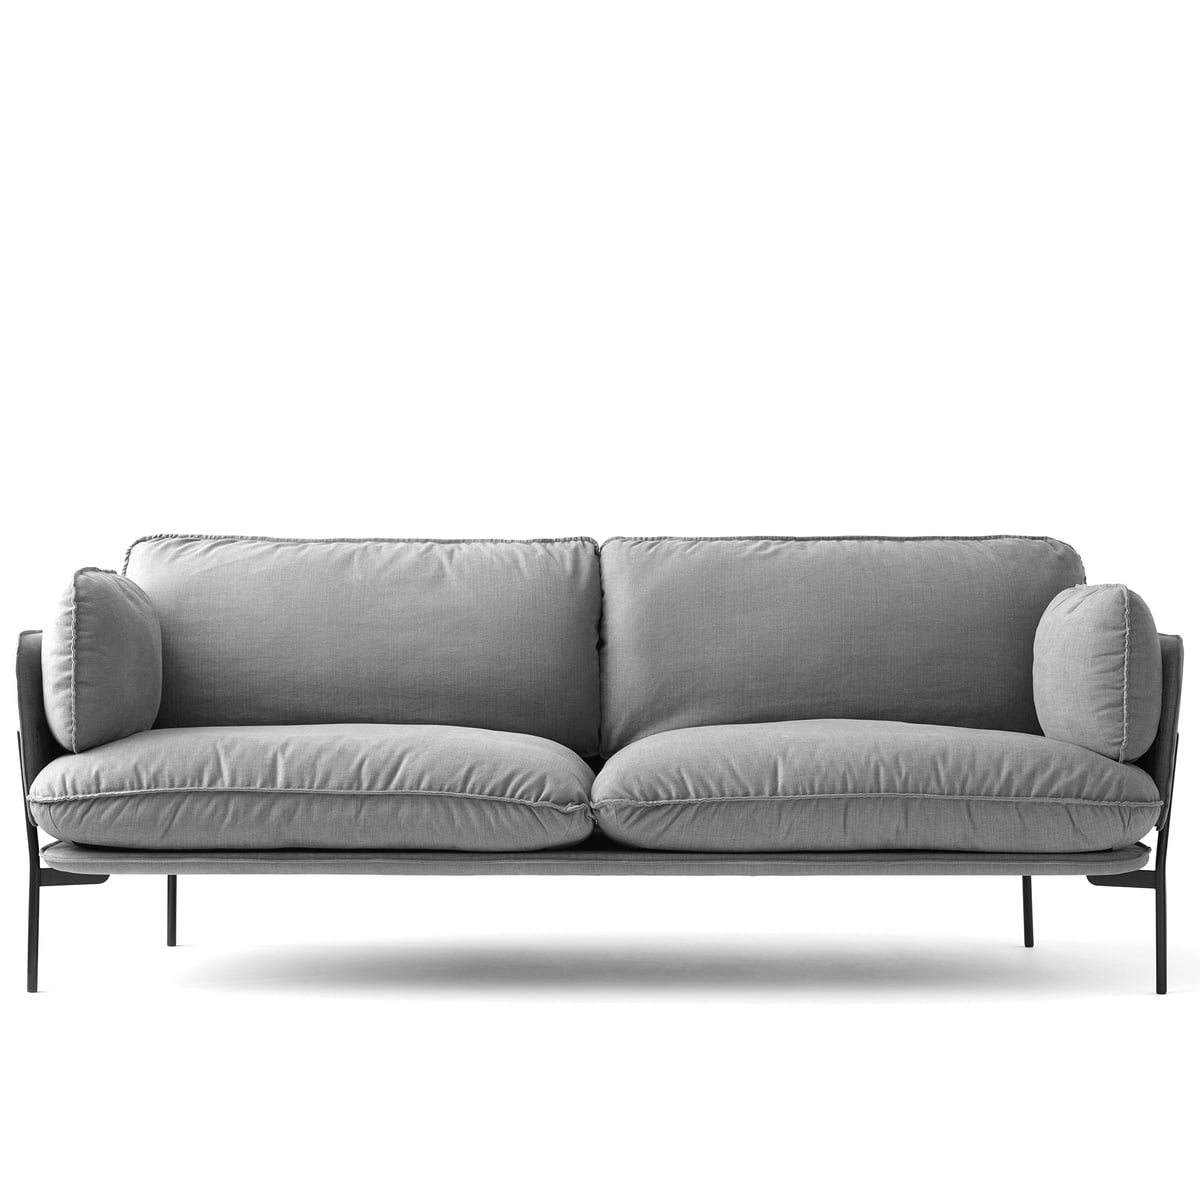 Cloud Sofa LN 3.2 By U0026Tradition With Frame In Warm Black / Hot Madison 724